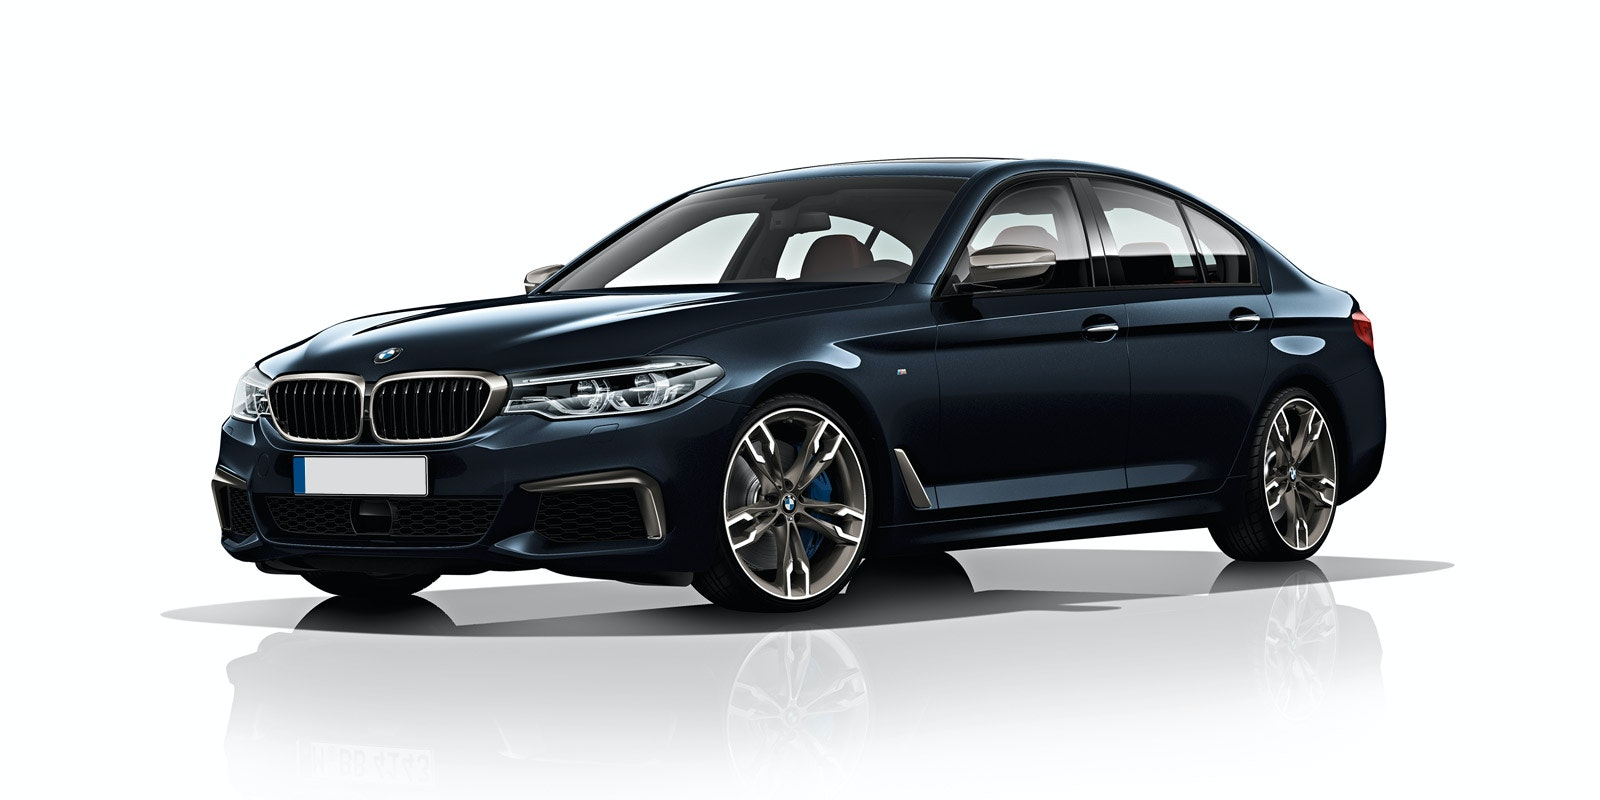 2018 Bmw M550d Price Specs And Release Date Carwow